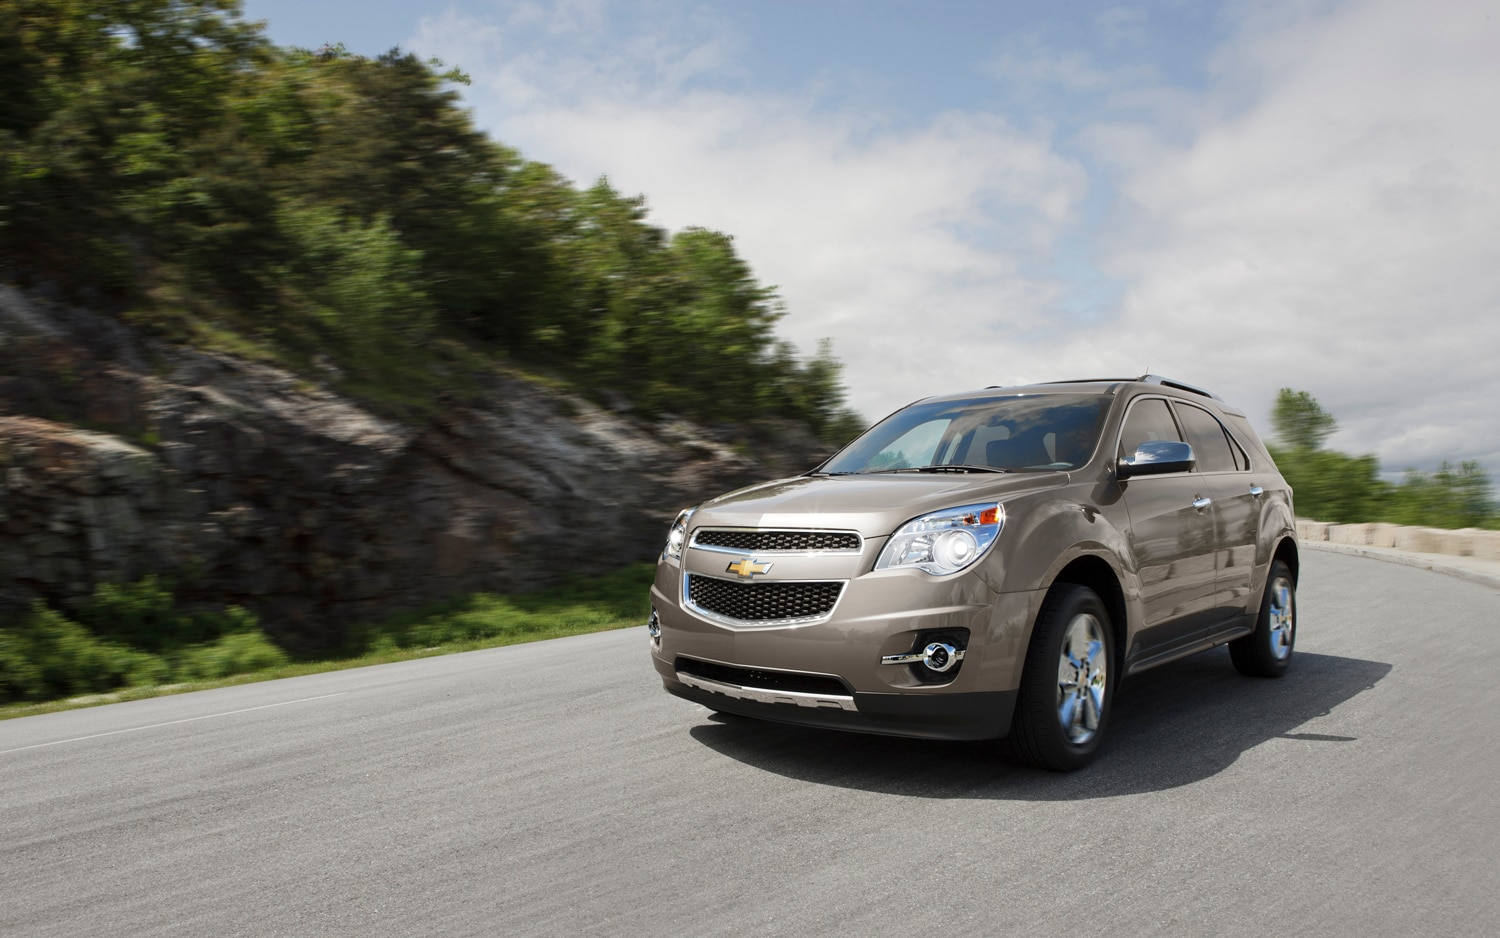 2013 Chevrolet Equinox LTZ 3 6 Front Left View1